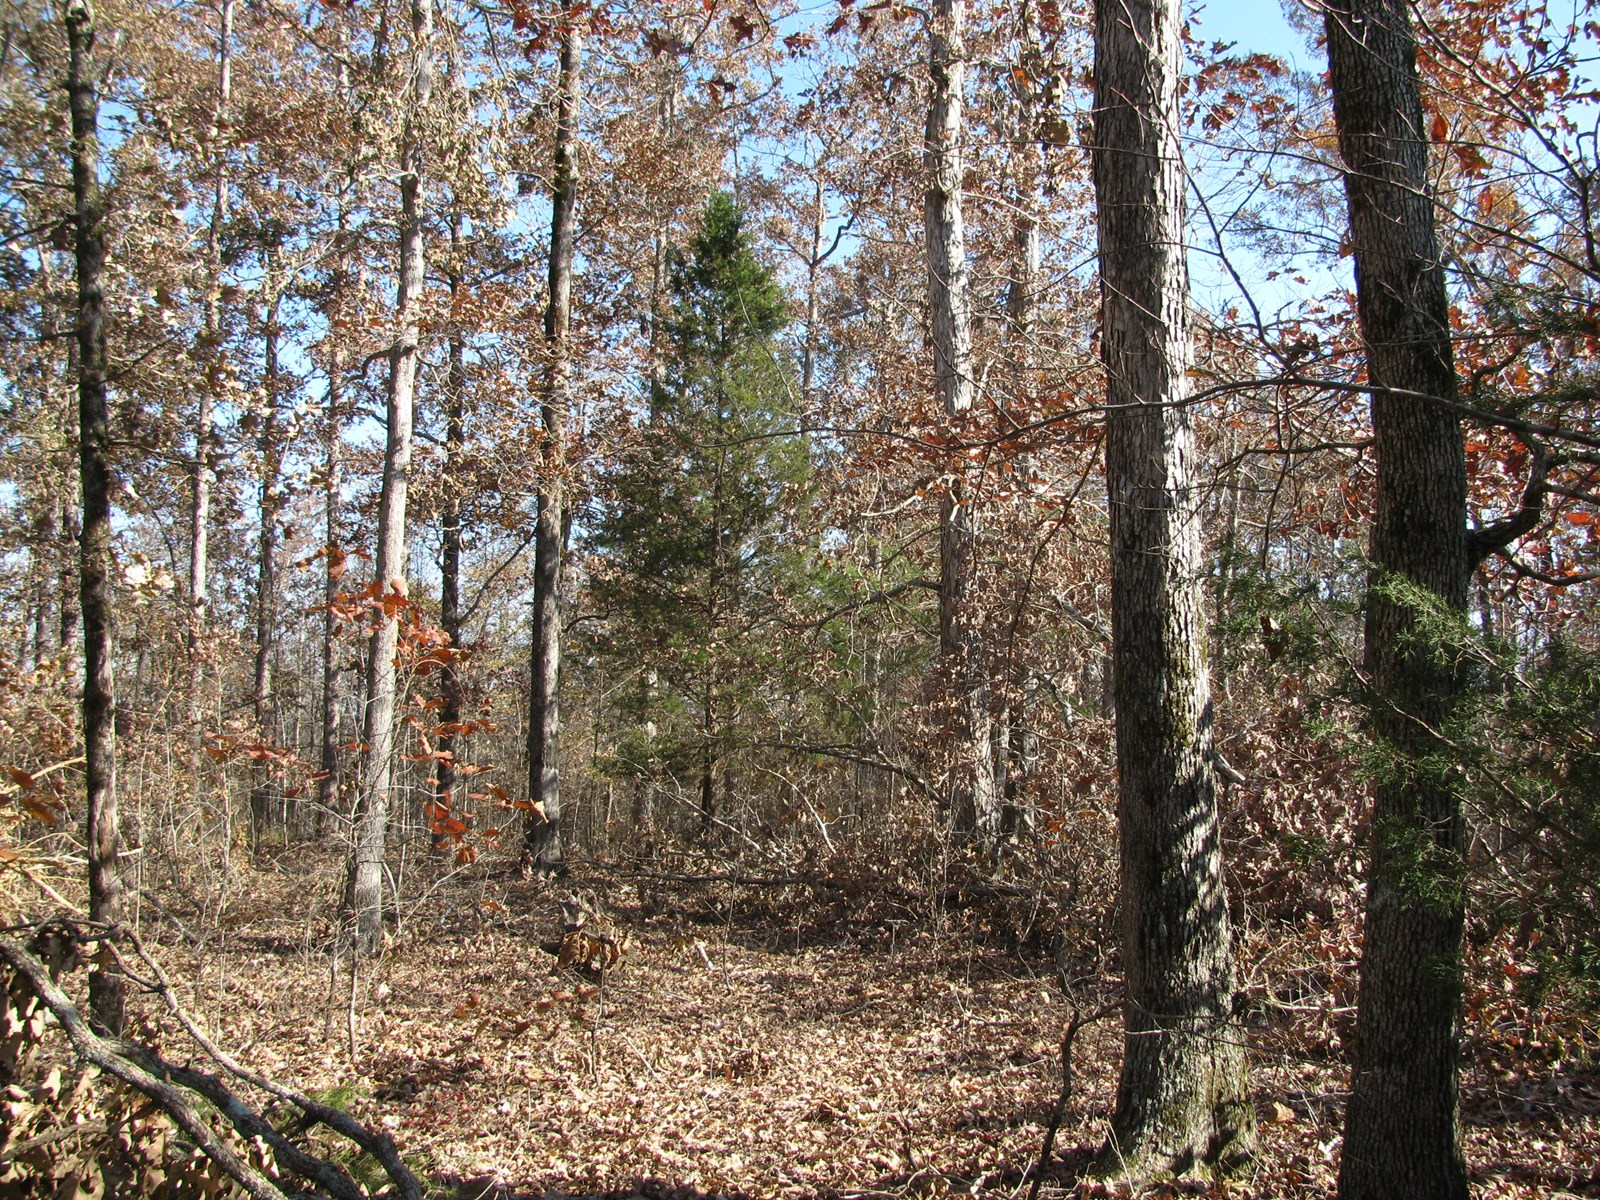 LAND FOR SALE IN TENNESSEE, DEER HUNTING LAND, WOODED